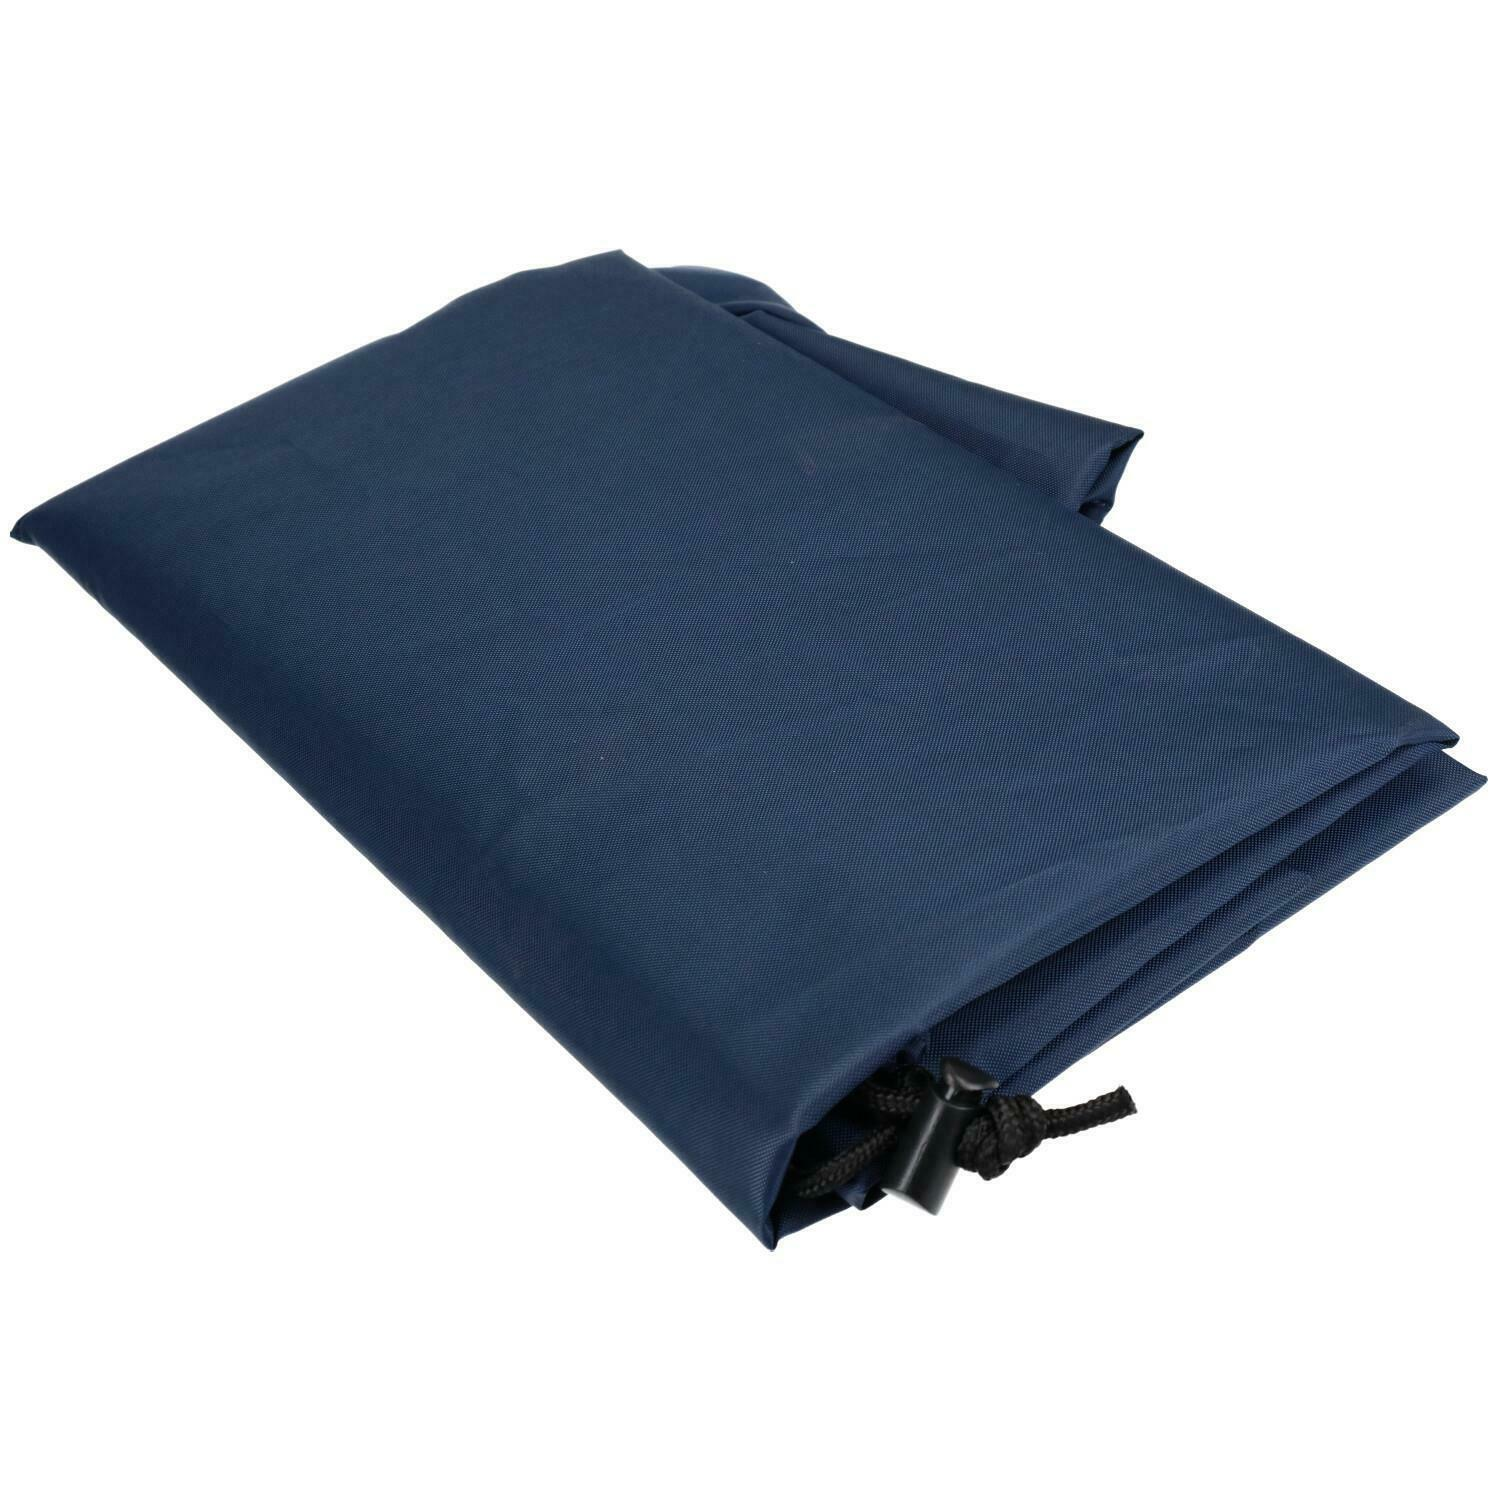 Extra Large Tent Awning Canvas Camping Storage Bag Drawstring 120cm by 70cm